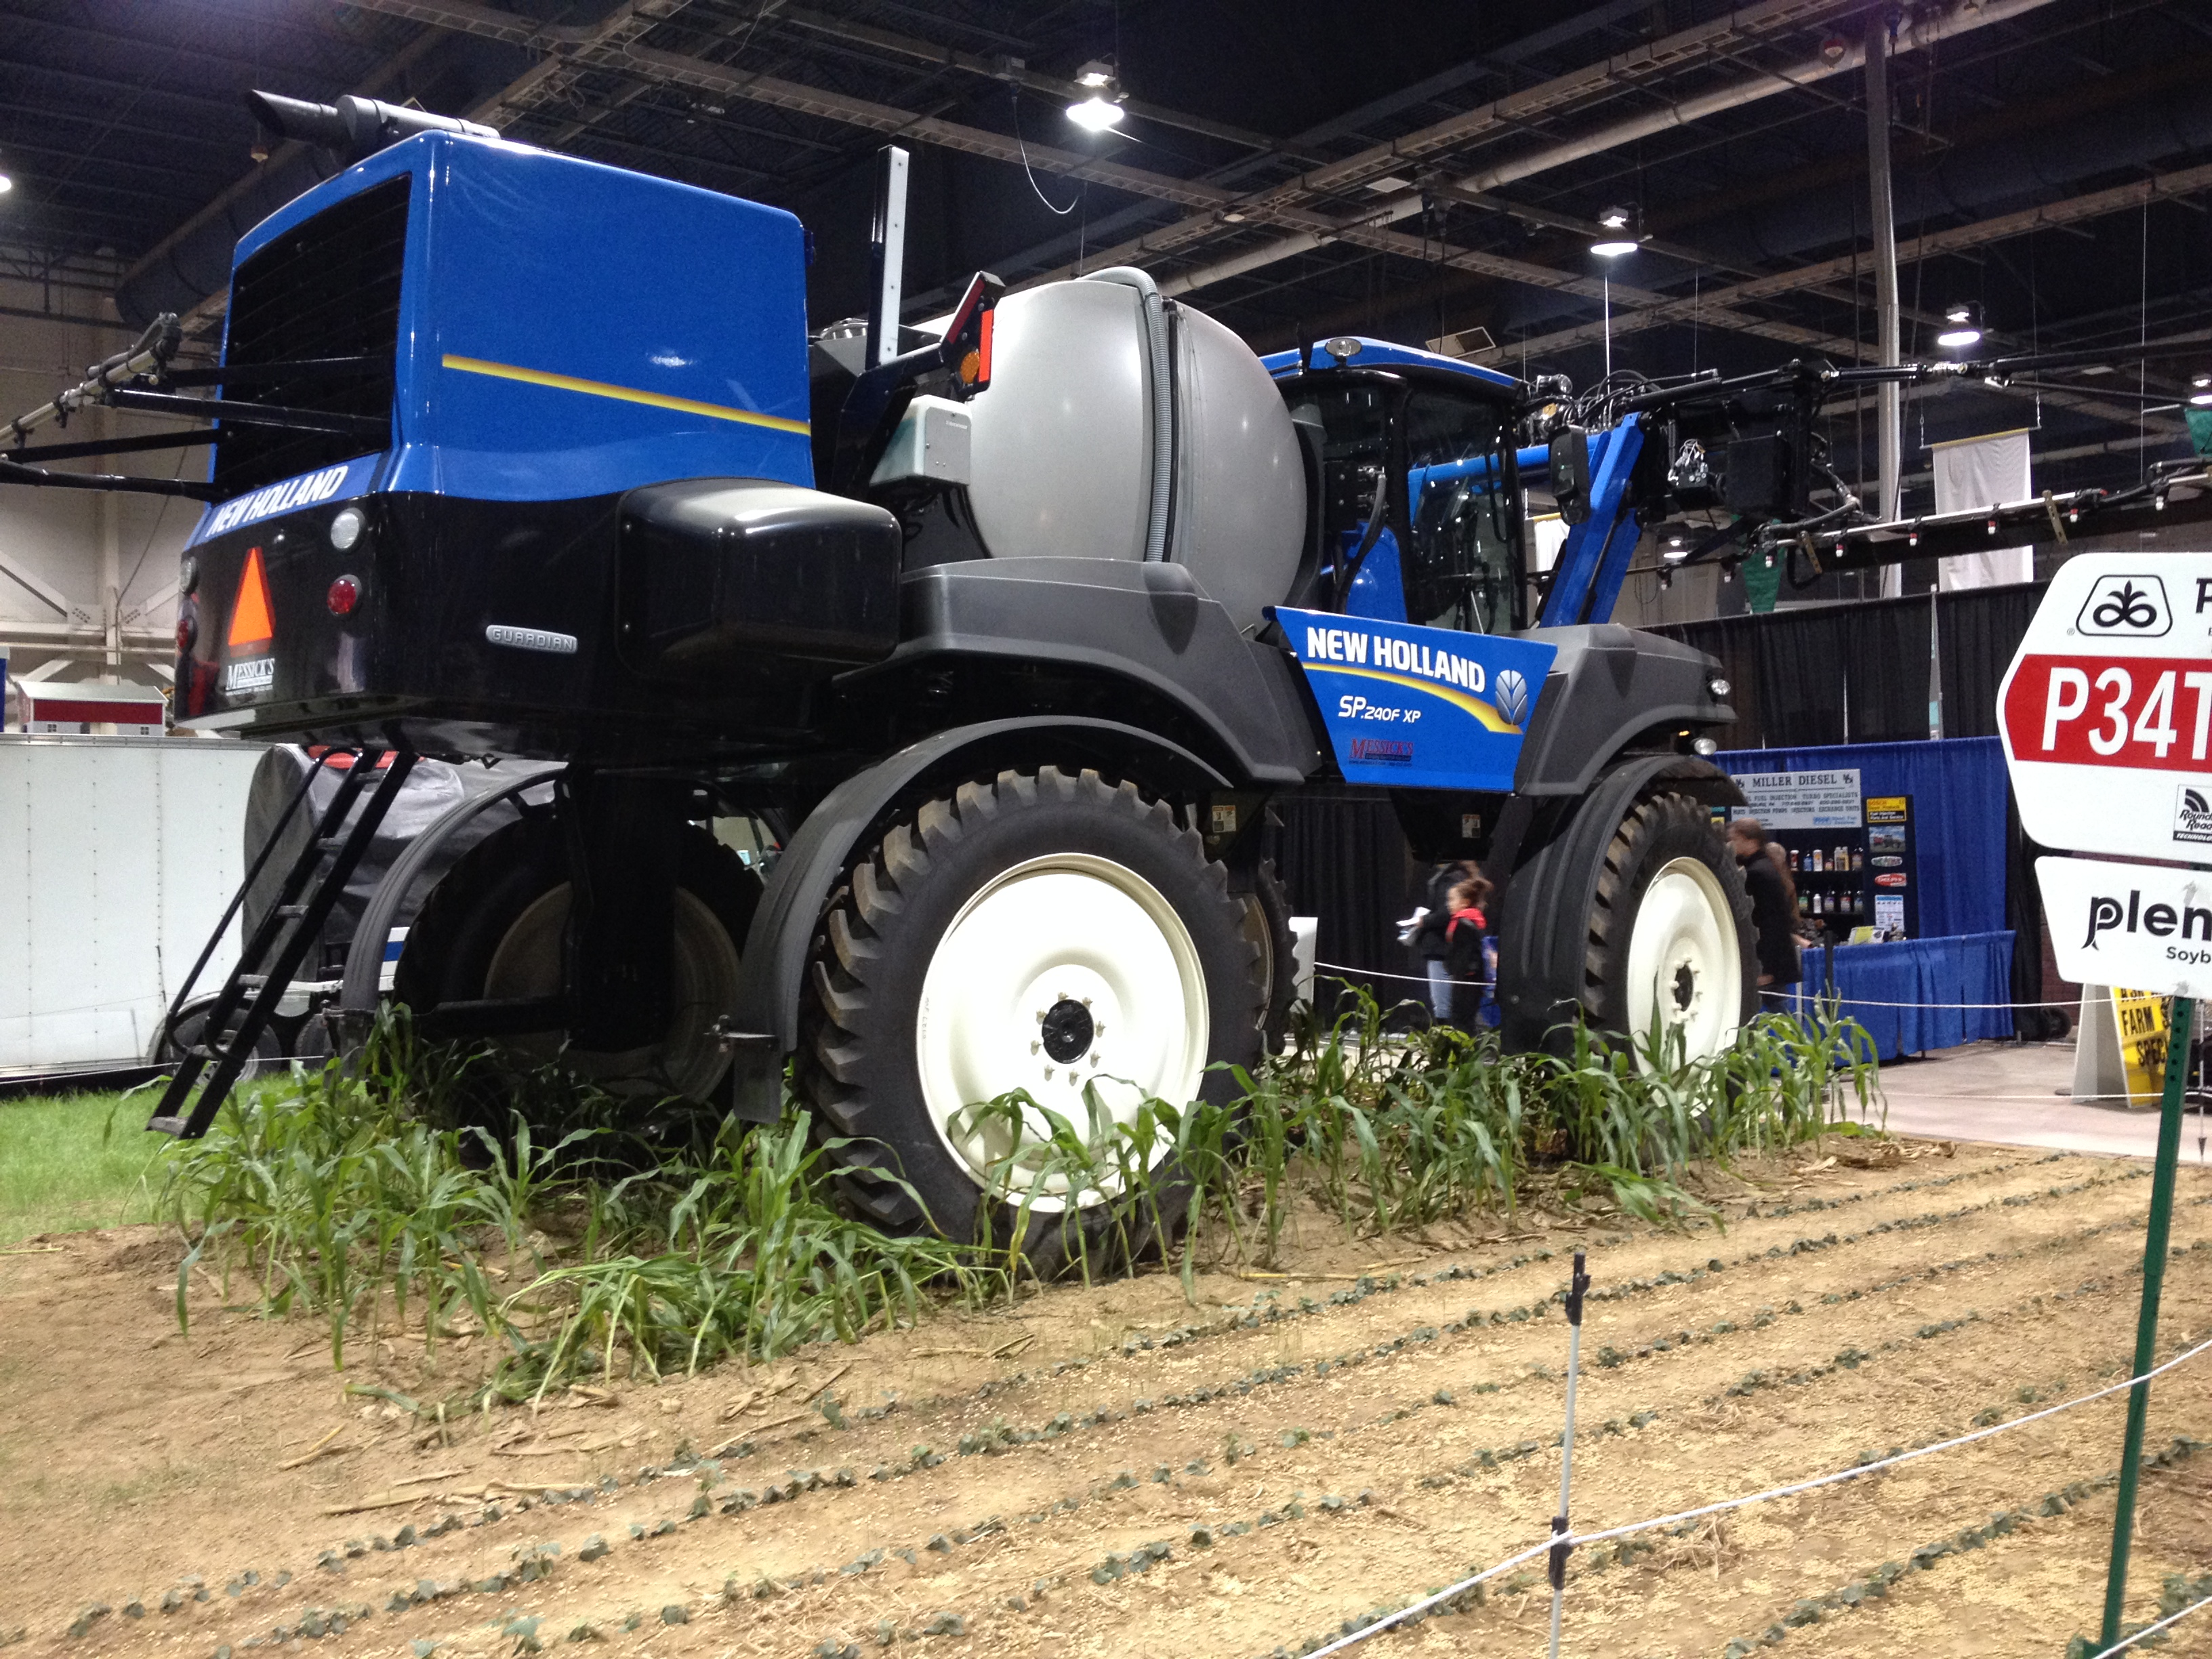 Tractor Envy | SAP Blogs